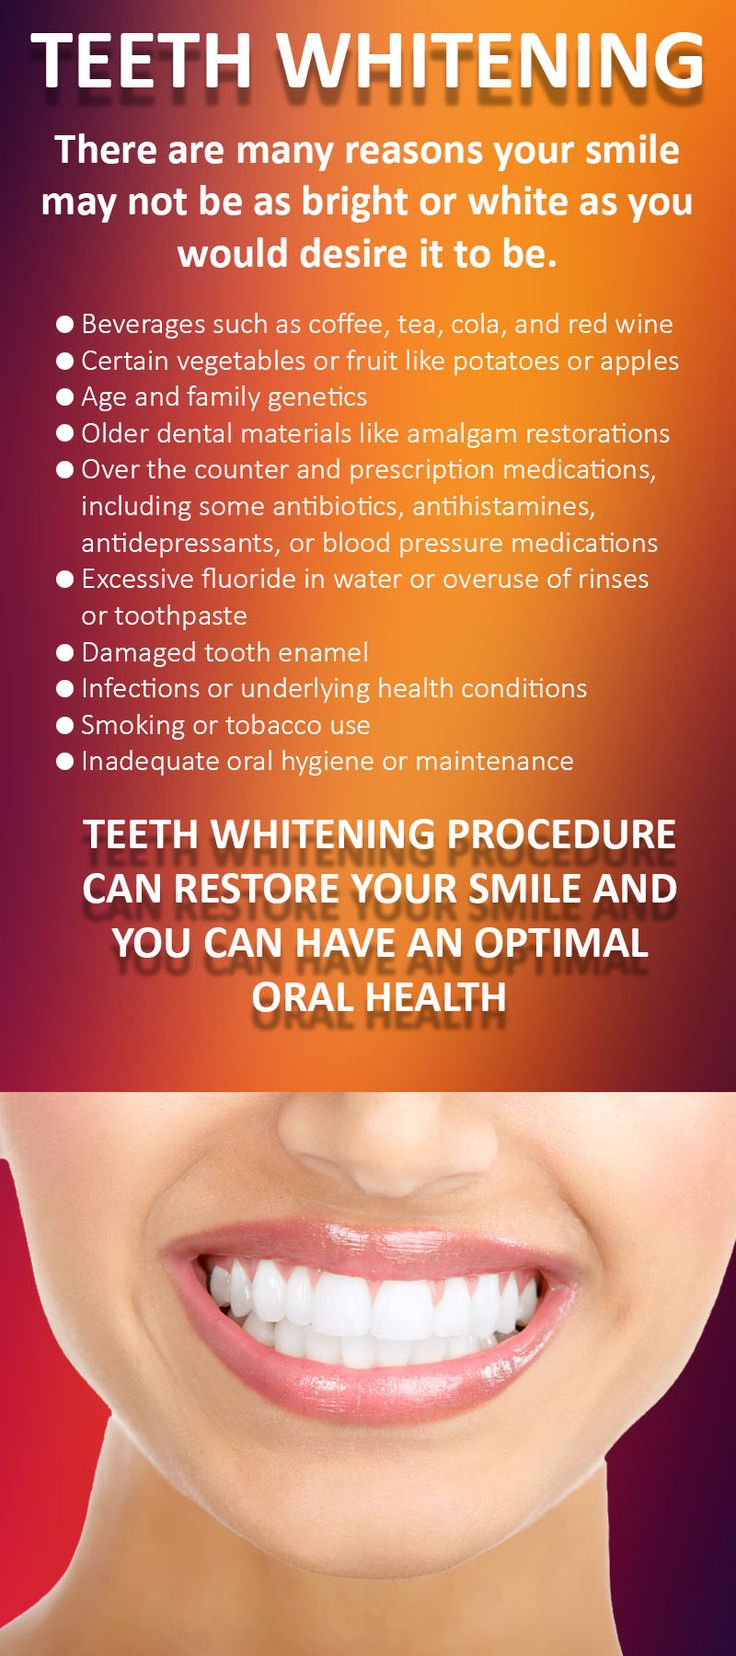 Dentist Which Provides Teeth Whitening Near Redlands - Call us today at 909-435-4558 to restore your smile and enjoy optimal oral health. Pure Gold Professionals in Dentistry are located at 303 Brookside Avenue, Redlands, CA 92373. #teethwhitening #teeth #dentures #dental #oralcare #tooth #whiteteeth #Redlands #CA #92373